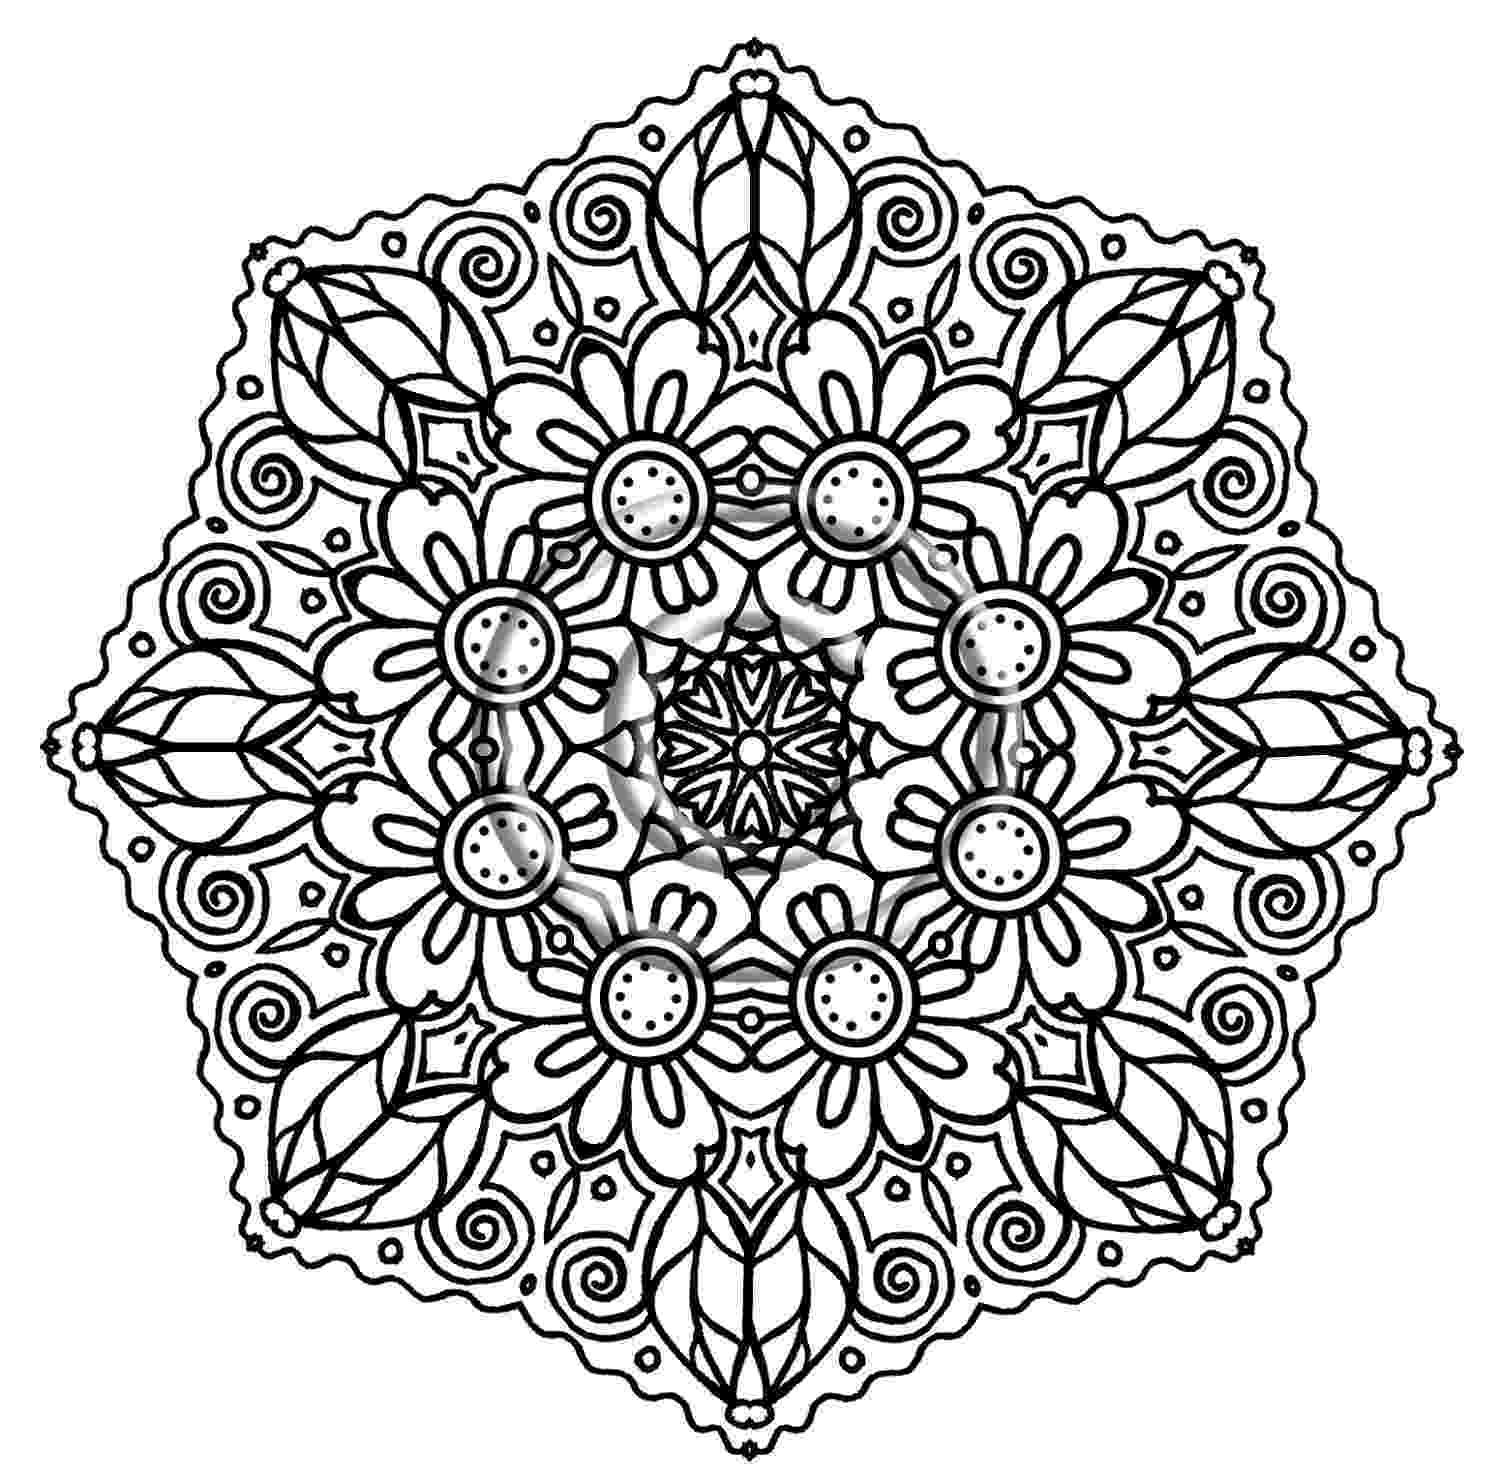 floral designs coloring book fanciful flowers adult coloring book designs myria book floral designs coloring